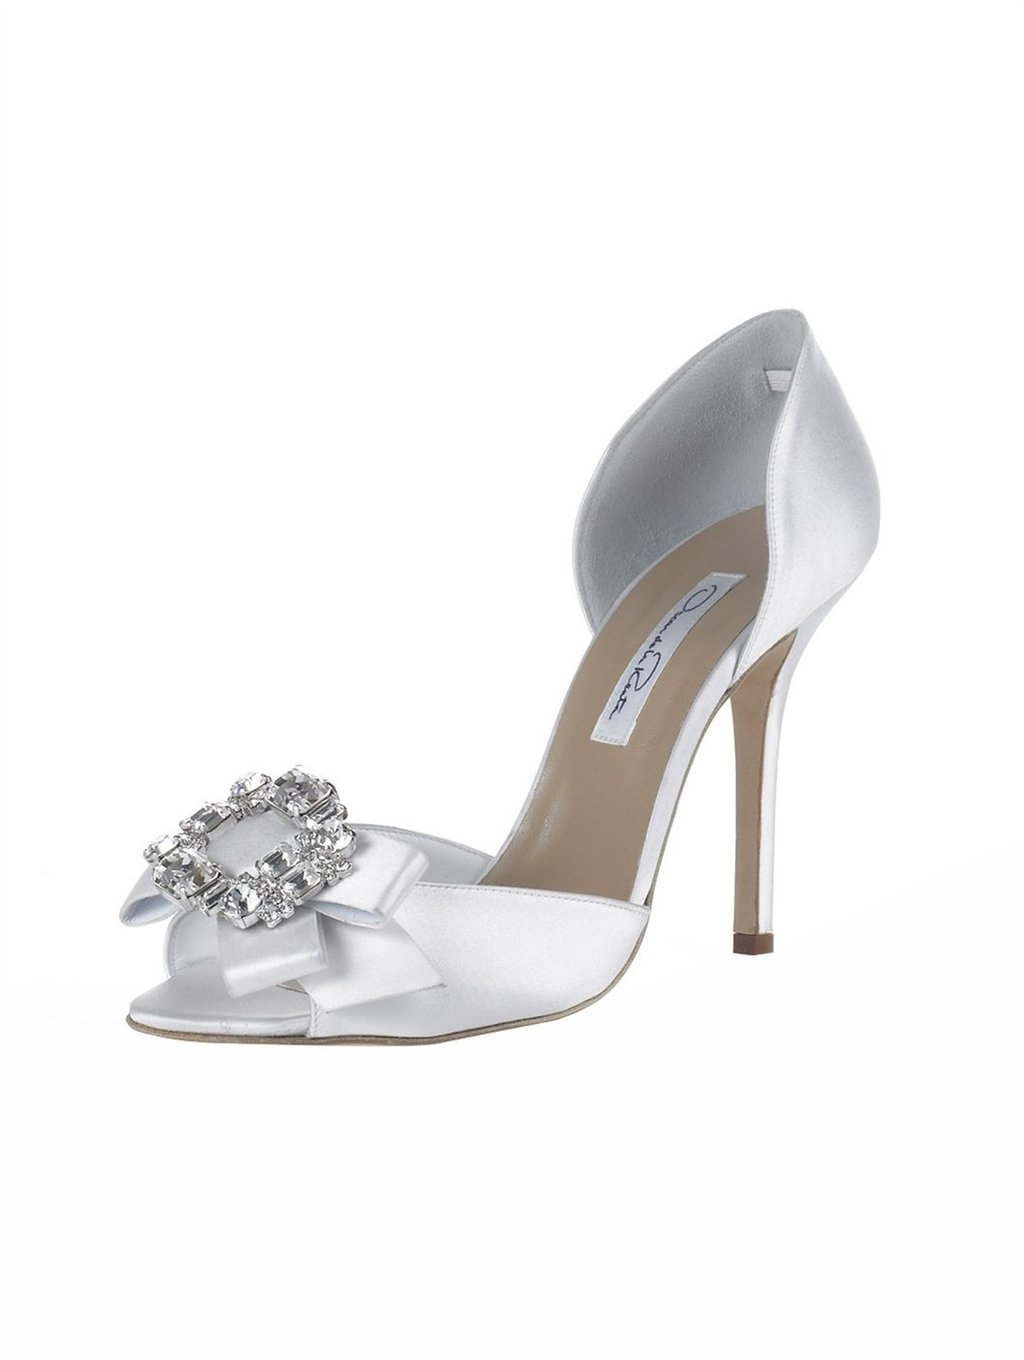 oscar de la renta wedding shoes bridal shoes oscar de la renta wedding heels white satin 6314